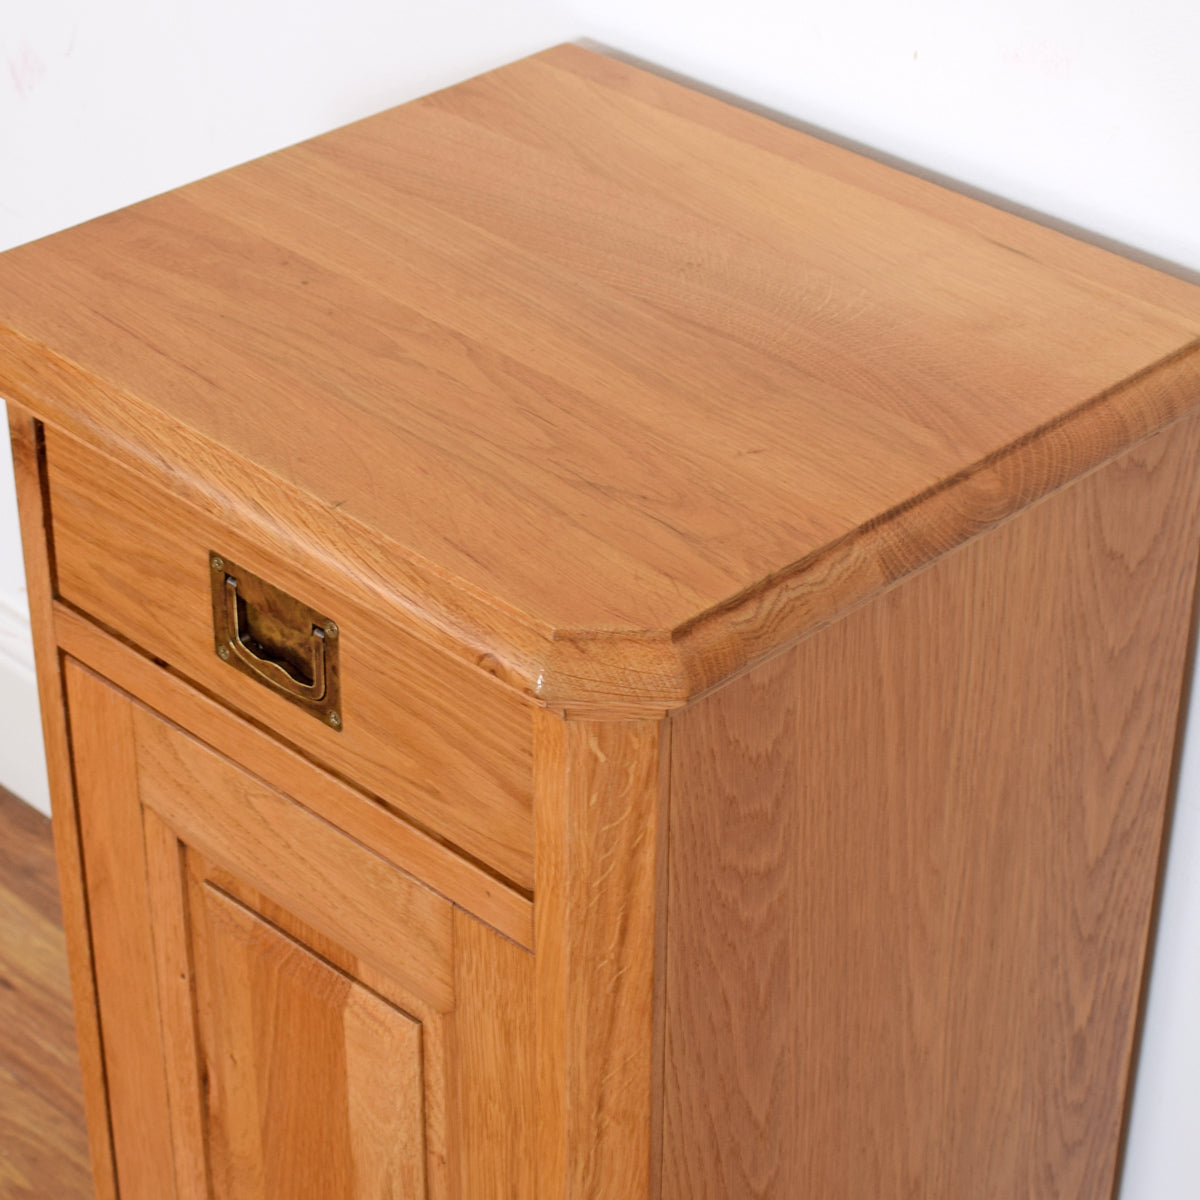 Dutch Oak Cabinet/Bedside